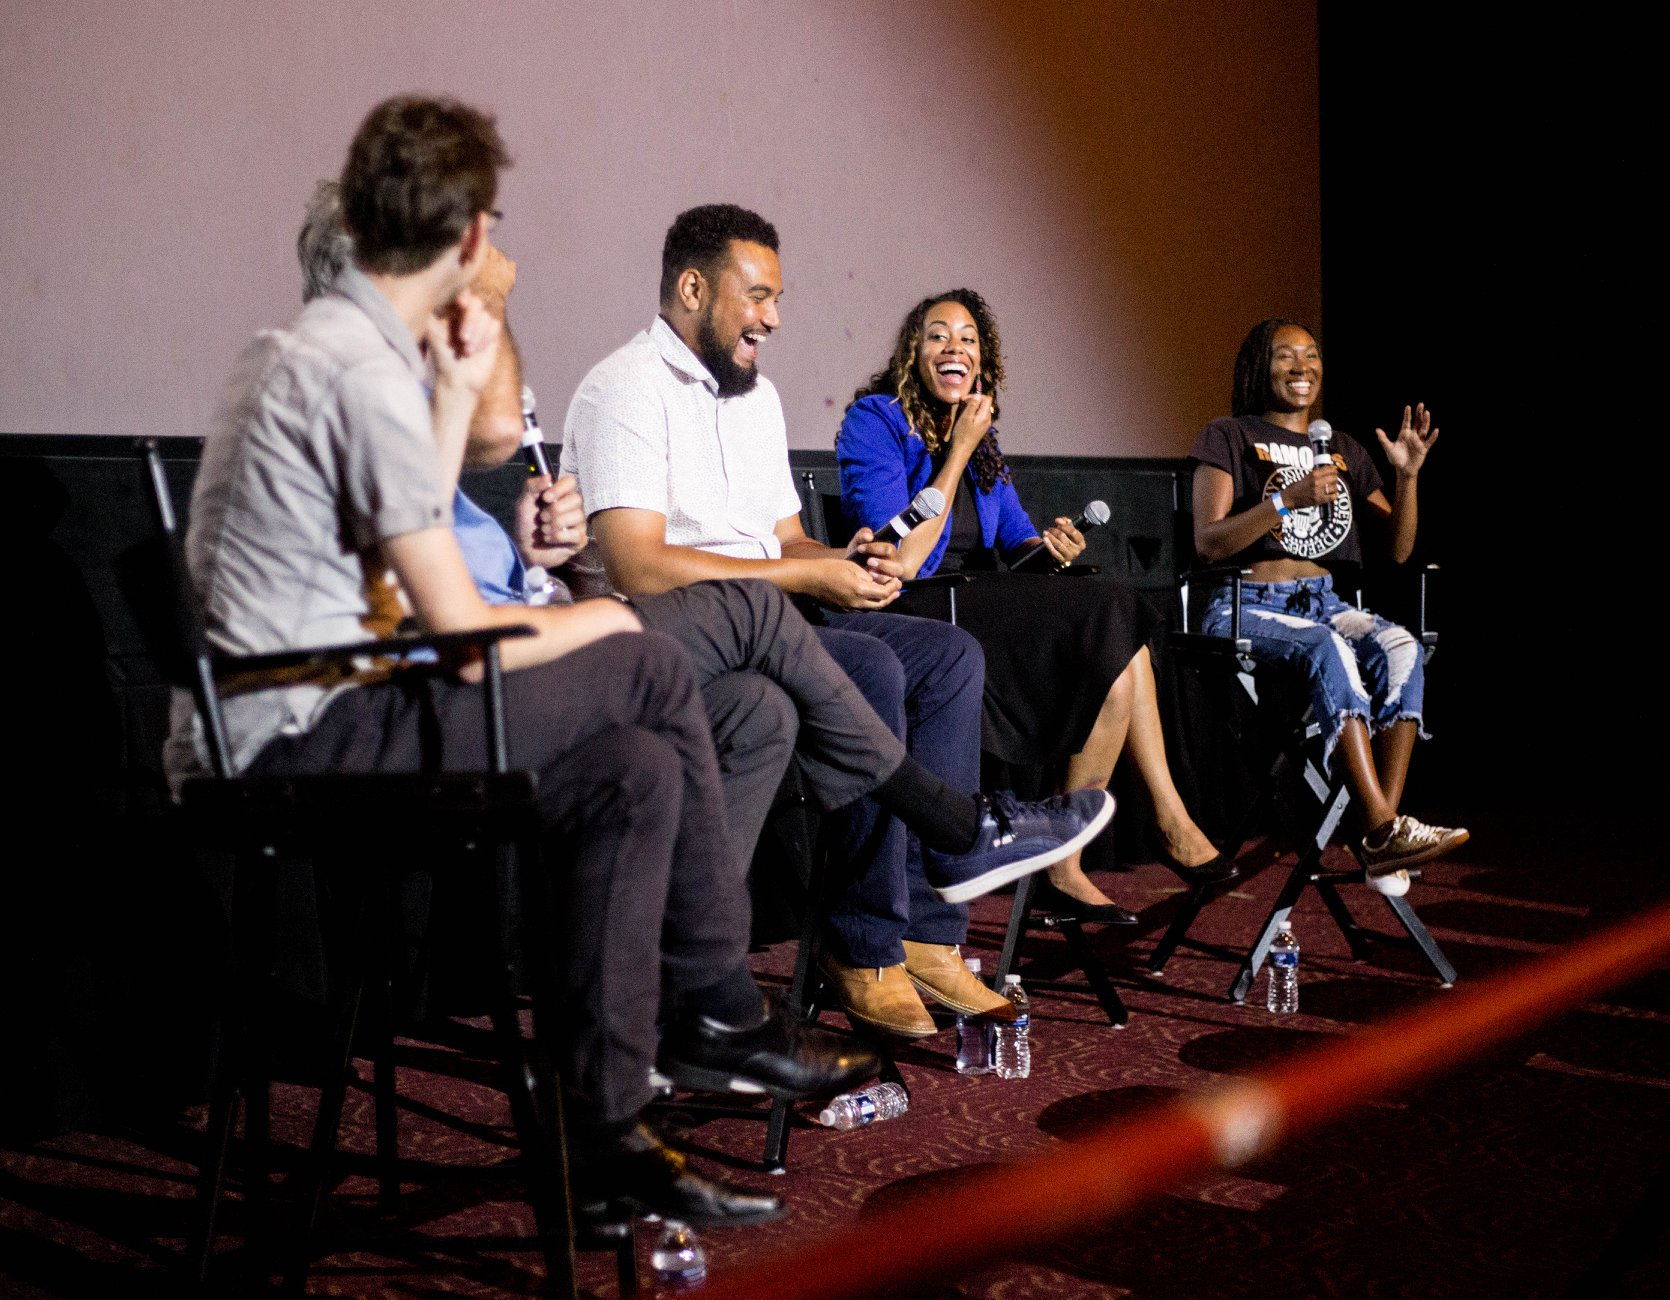 AMERICA TO ME cast & crew in discussion